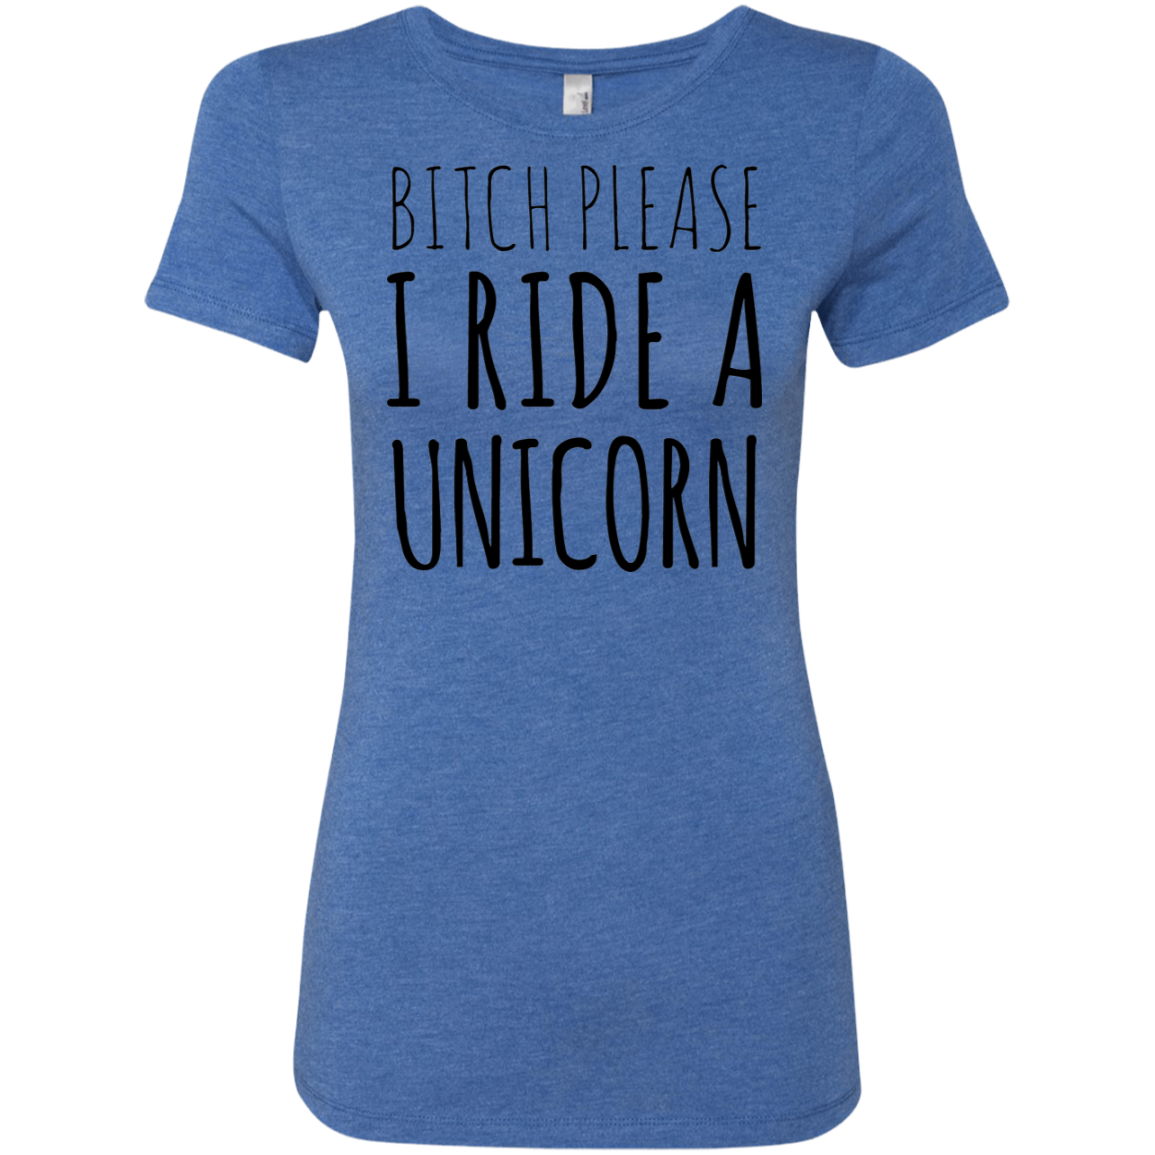 Bitch Please I Ride a Unicorn Women's Classic Tee - Trendy Tees